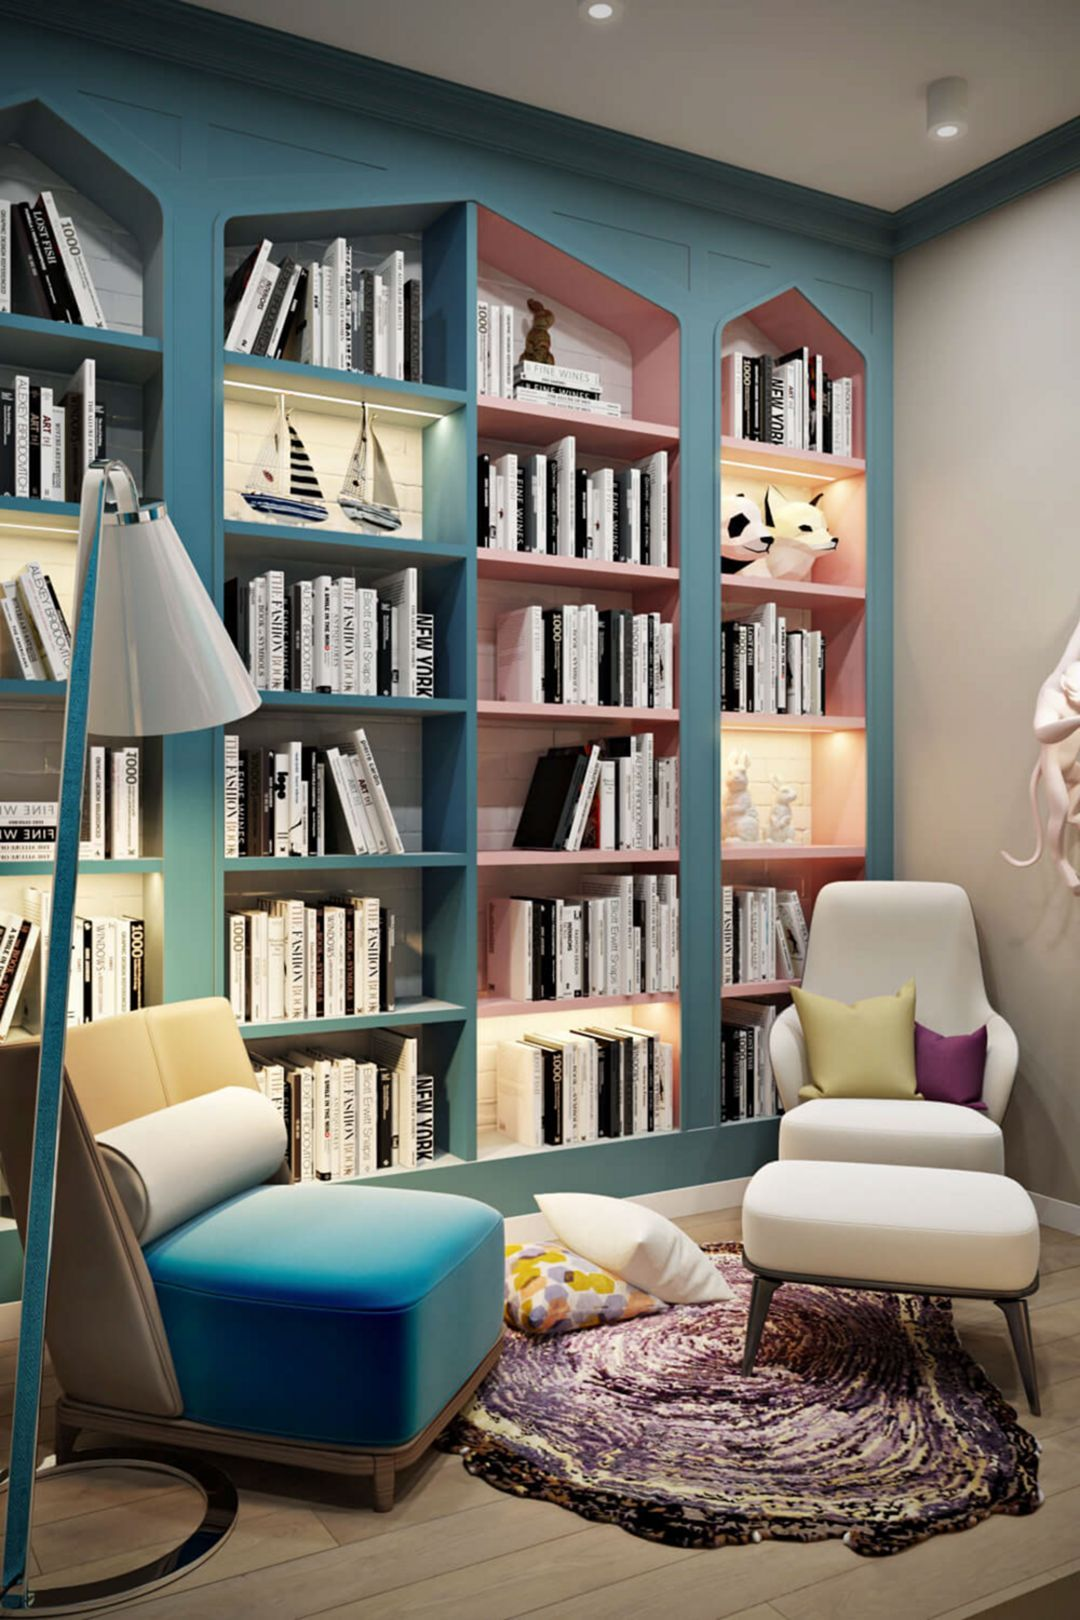 Small Library Room Decorating Ideas: 25 Fabulous Design Ideas For Mini Libraries In Your Home